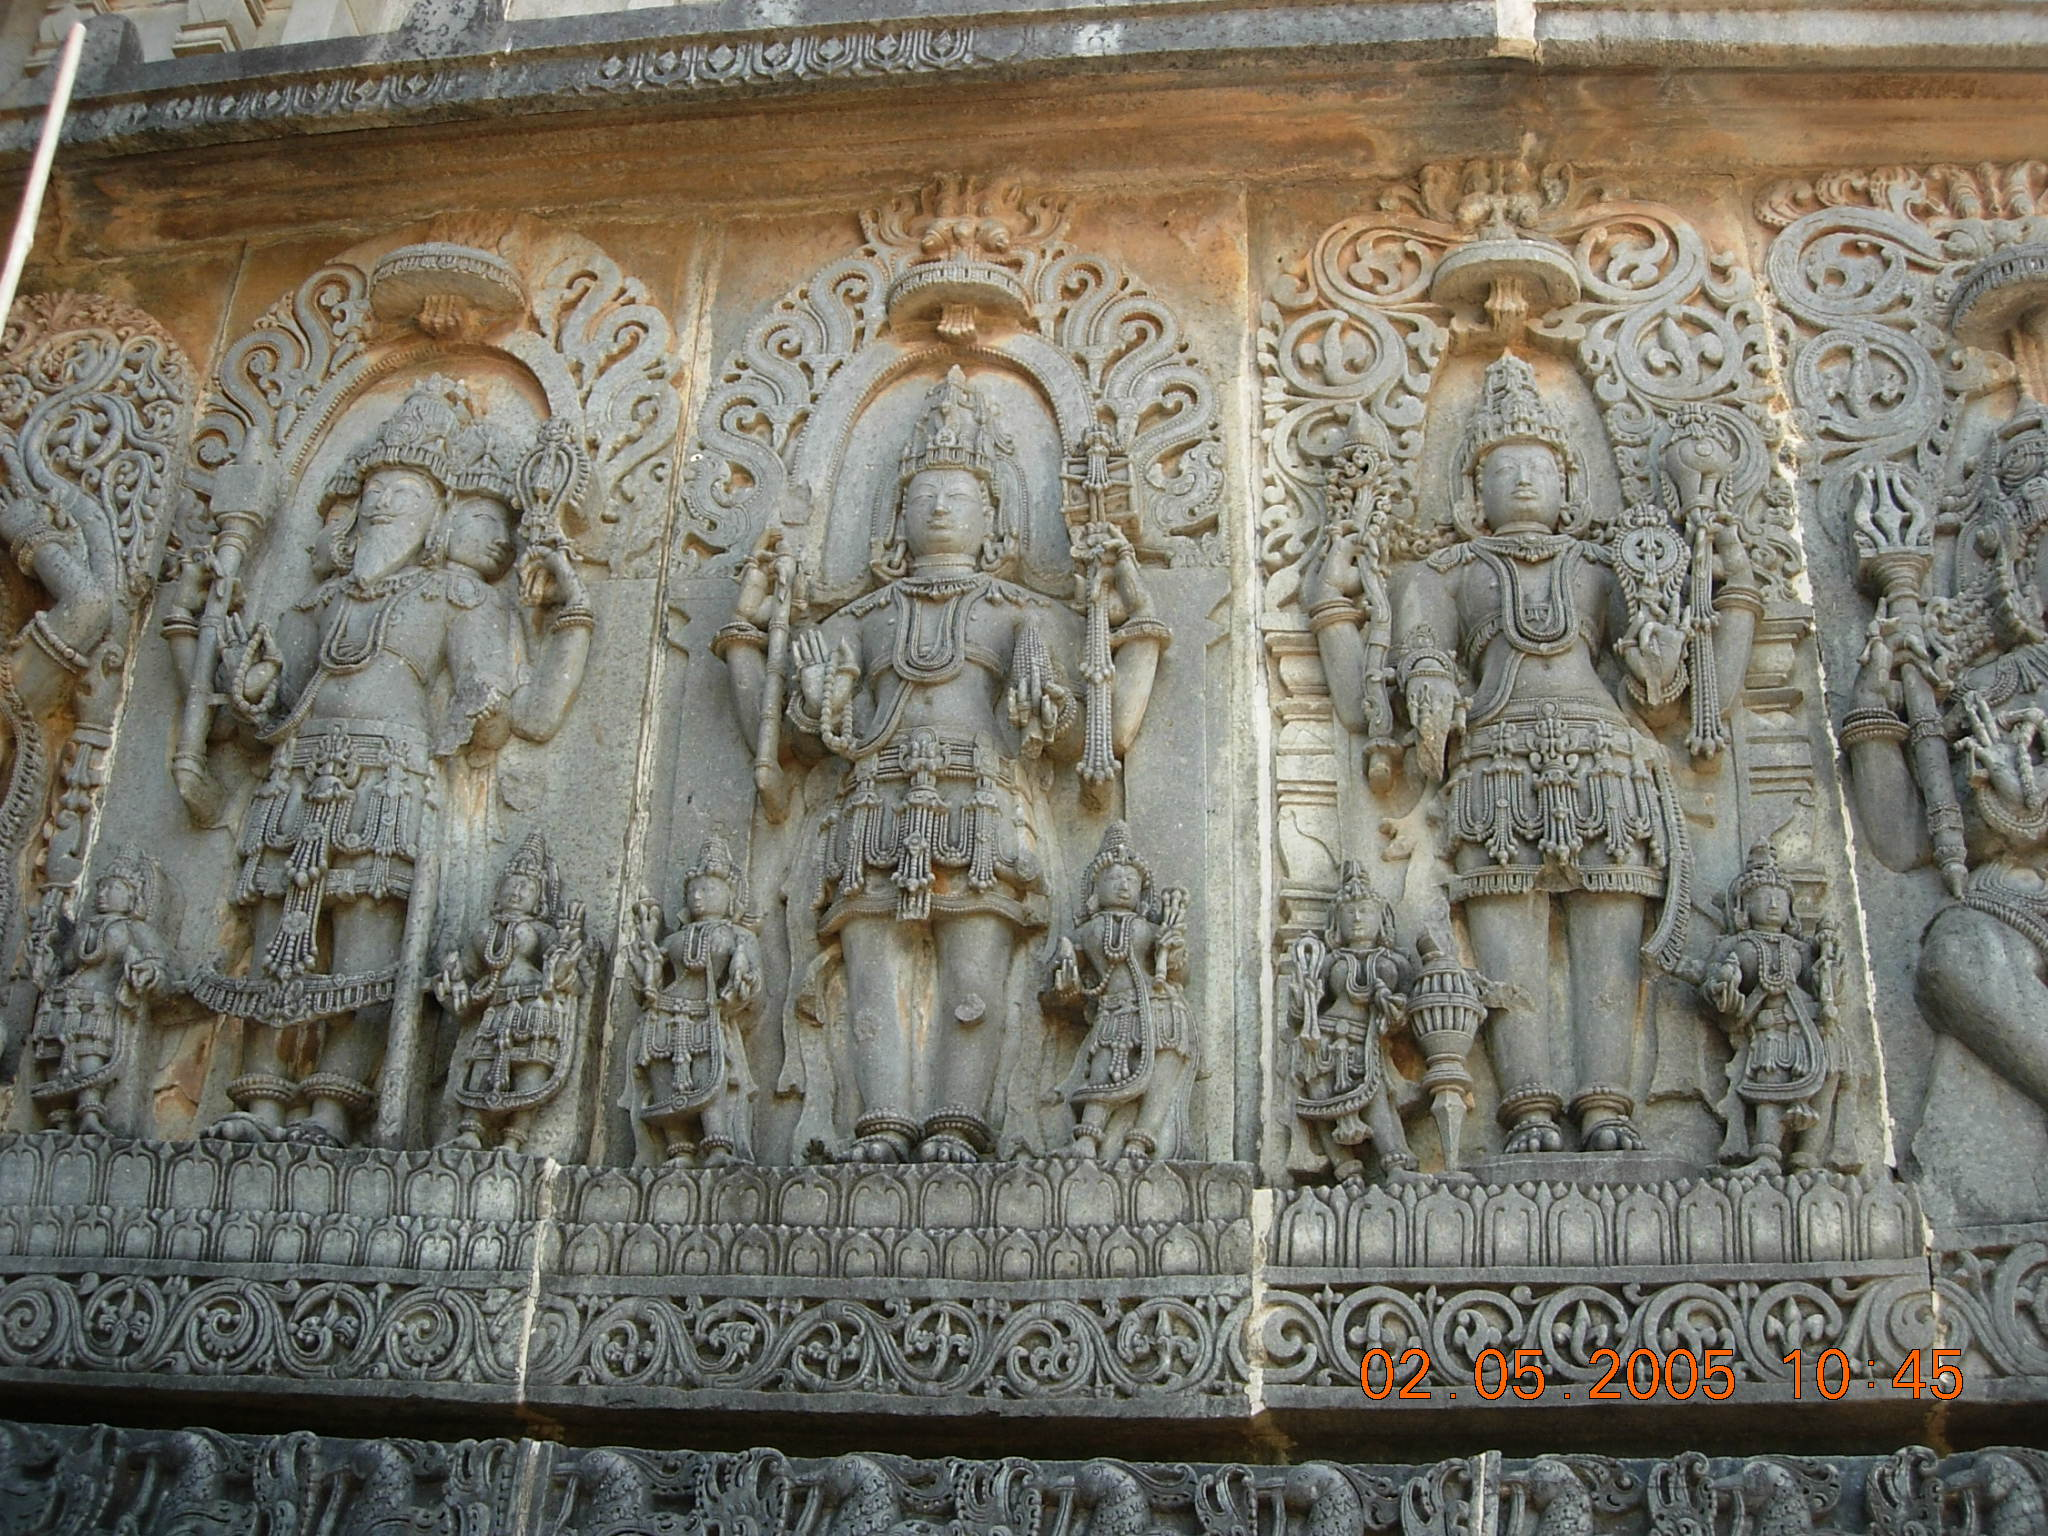 hinduism and islam differences and similarities  temple carving at hoy swara temple representing the trimurti brahma shiva and vishnu